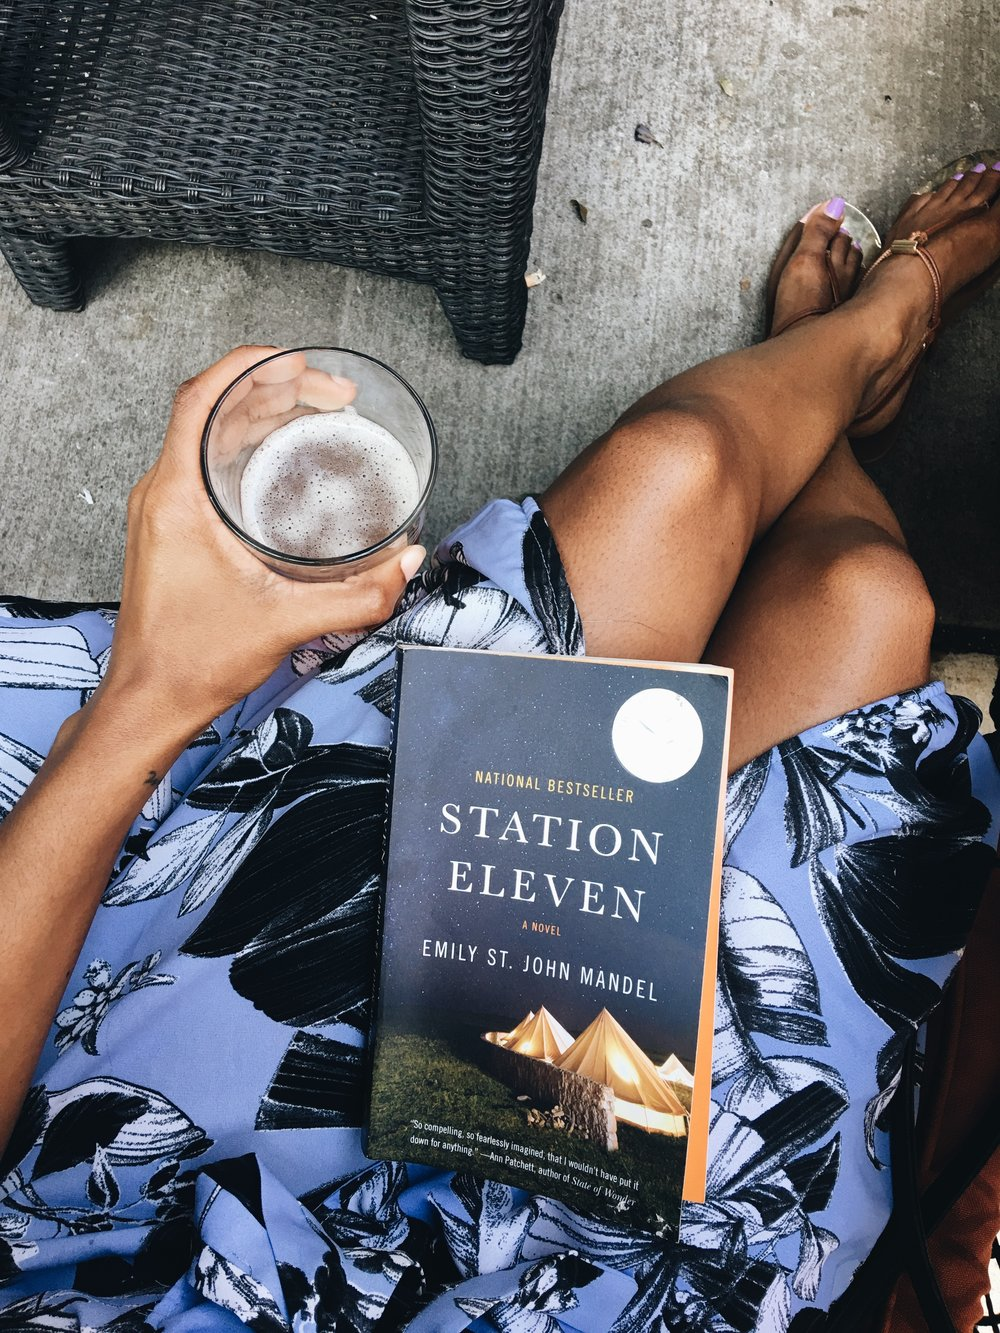 Station Eleven is an incredible, poignant compilation of humanvulnerability and strength.5/5 Beans  -